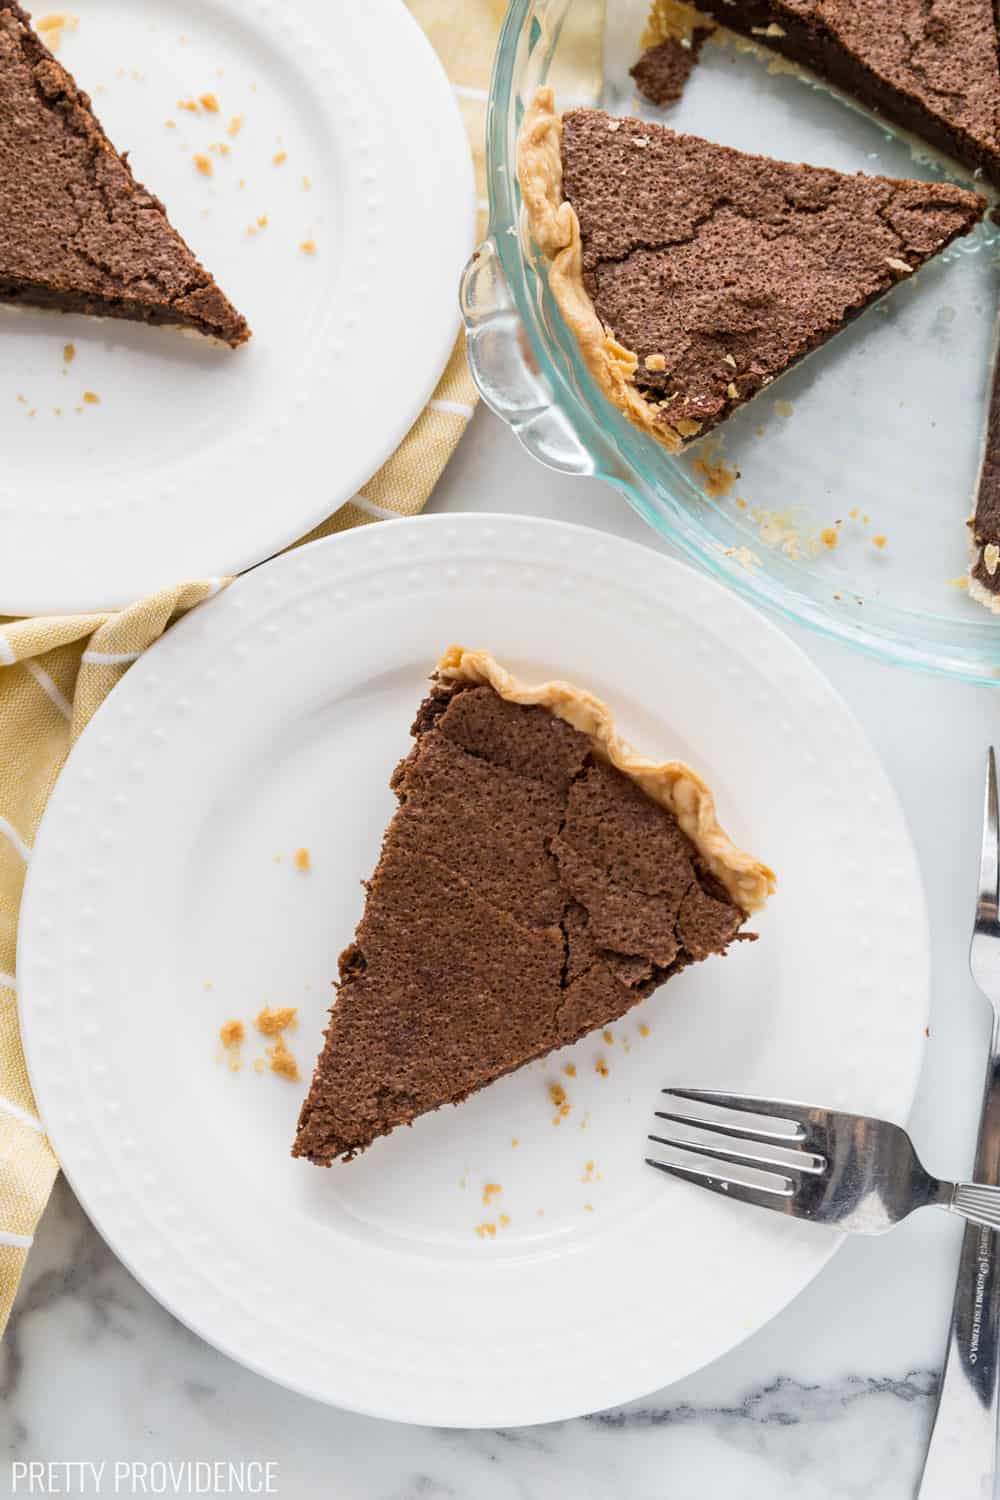 Chocolate Chess Pie slices on white dessert plates.